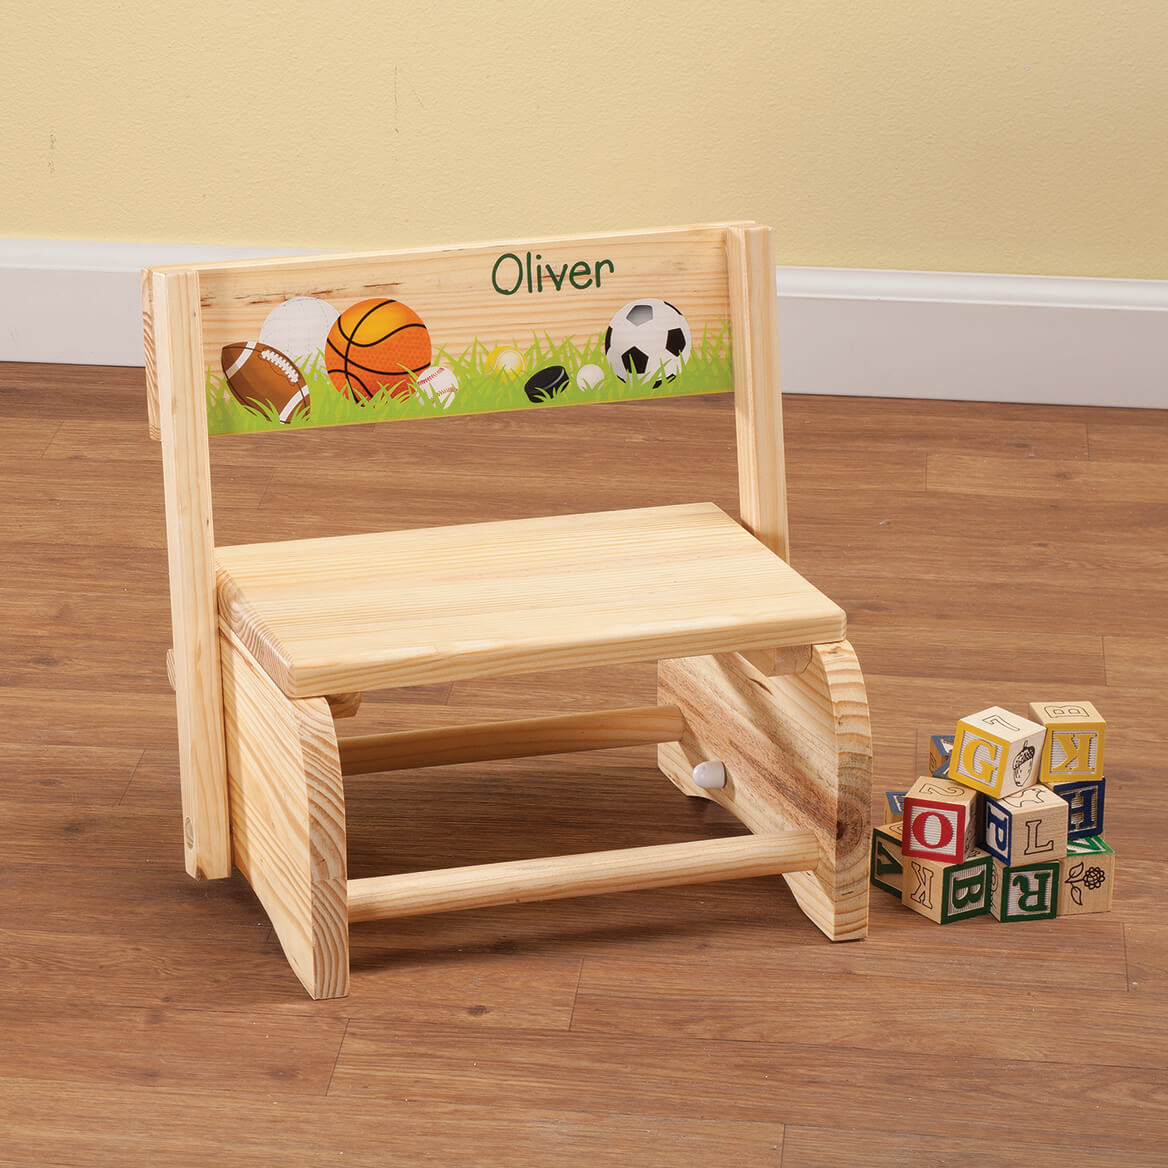 Personalized Children's Sports Step Stool-365668